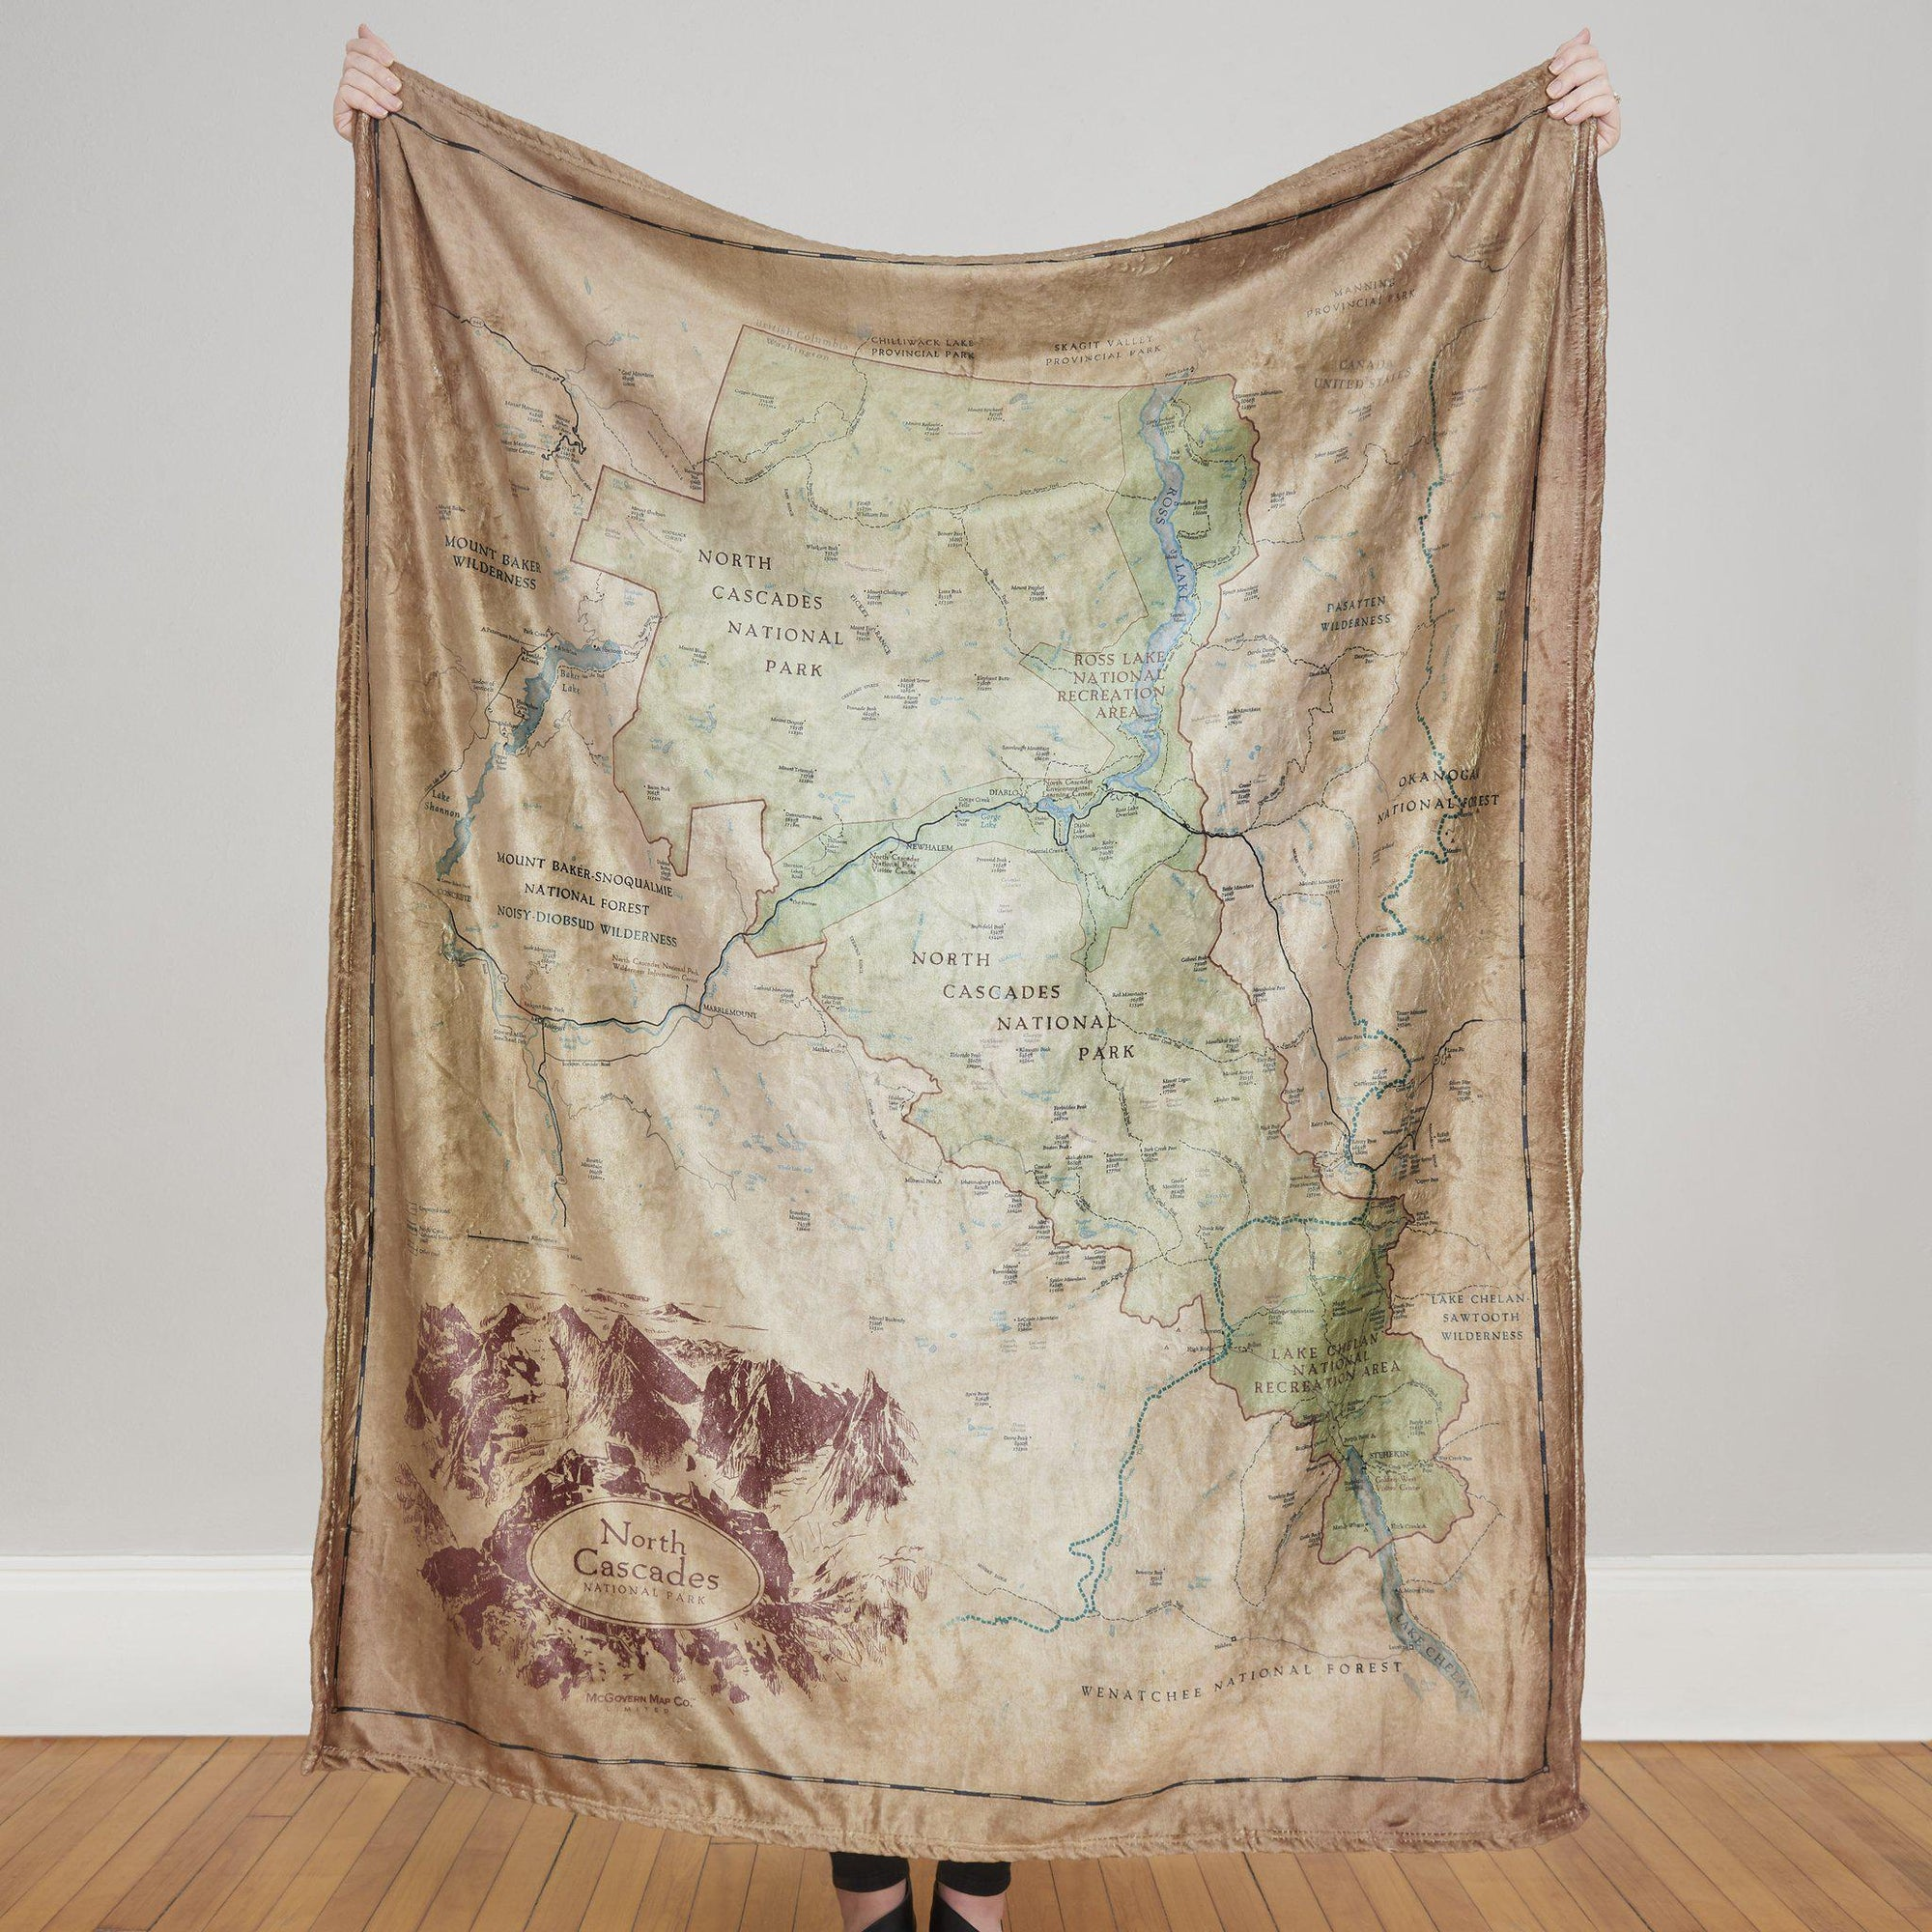 North Cascades National Park Map Blanket - McGovern & Company